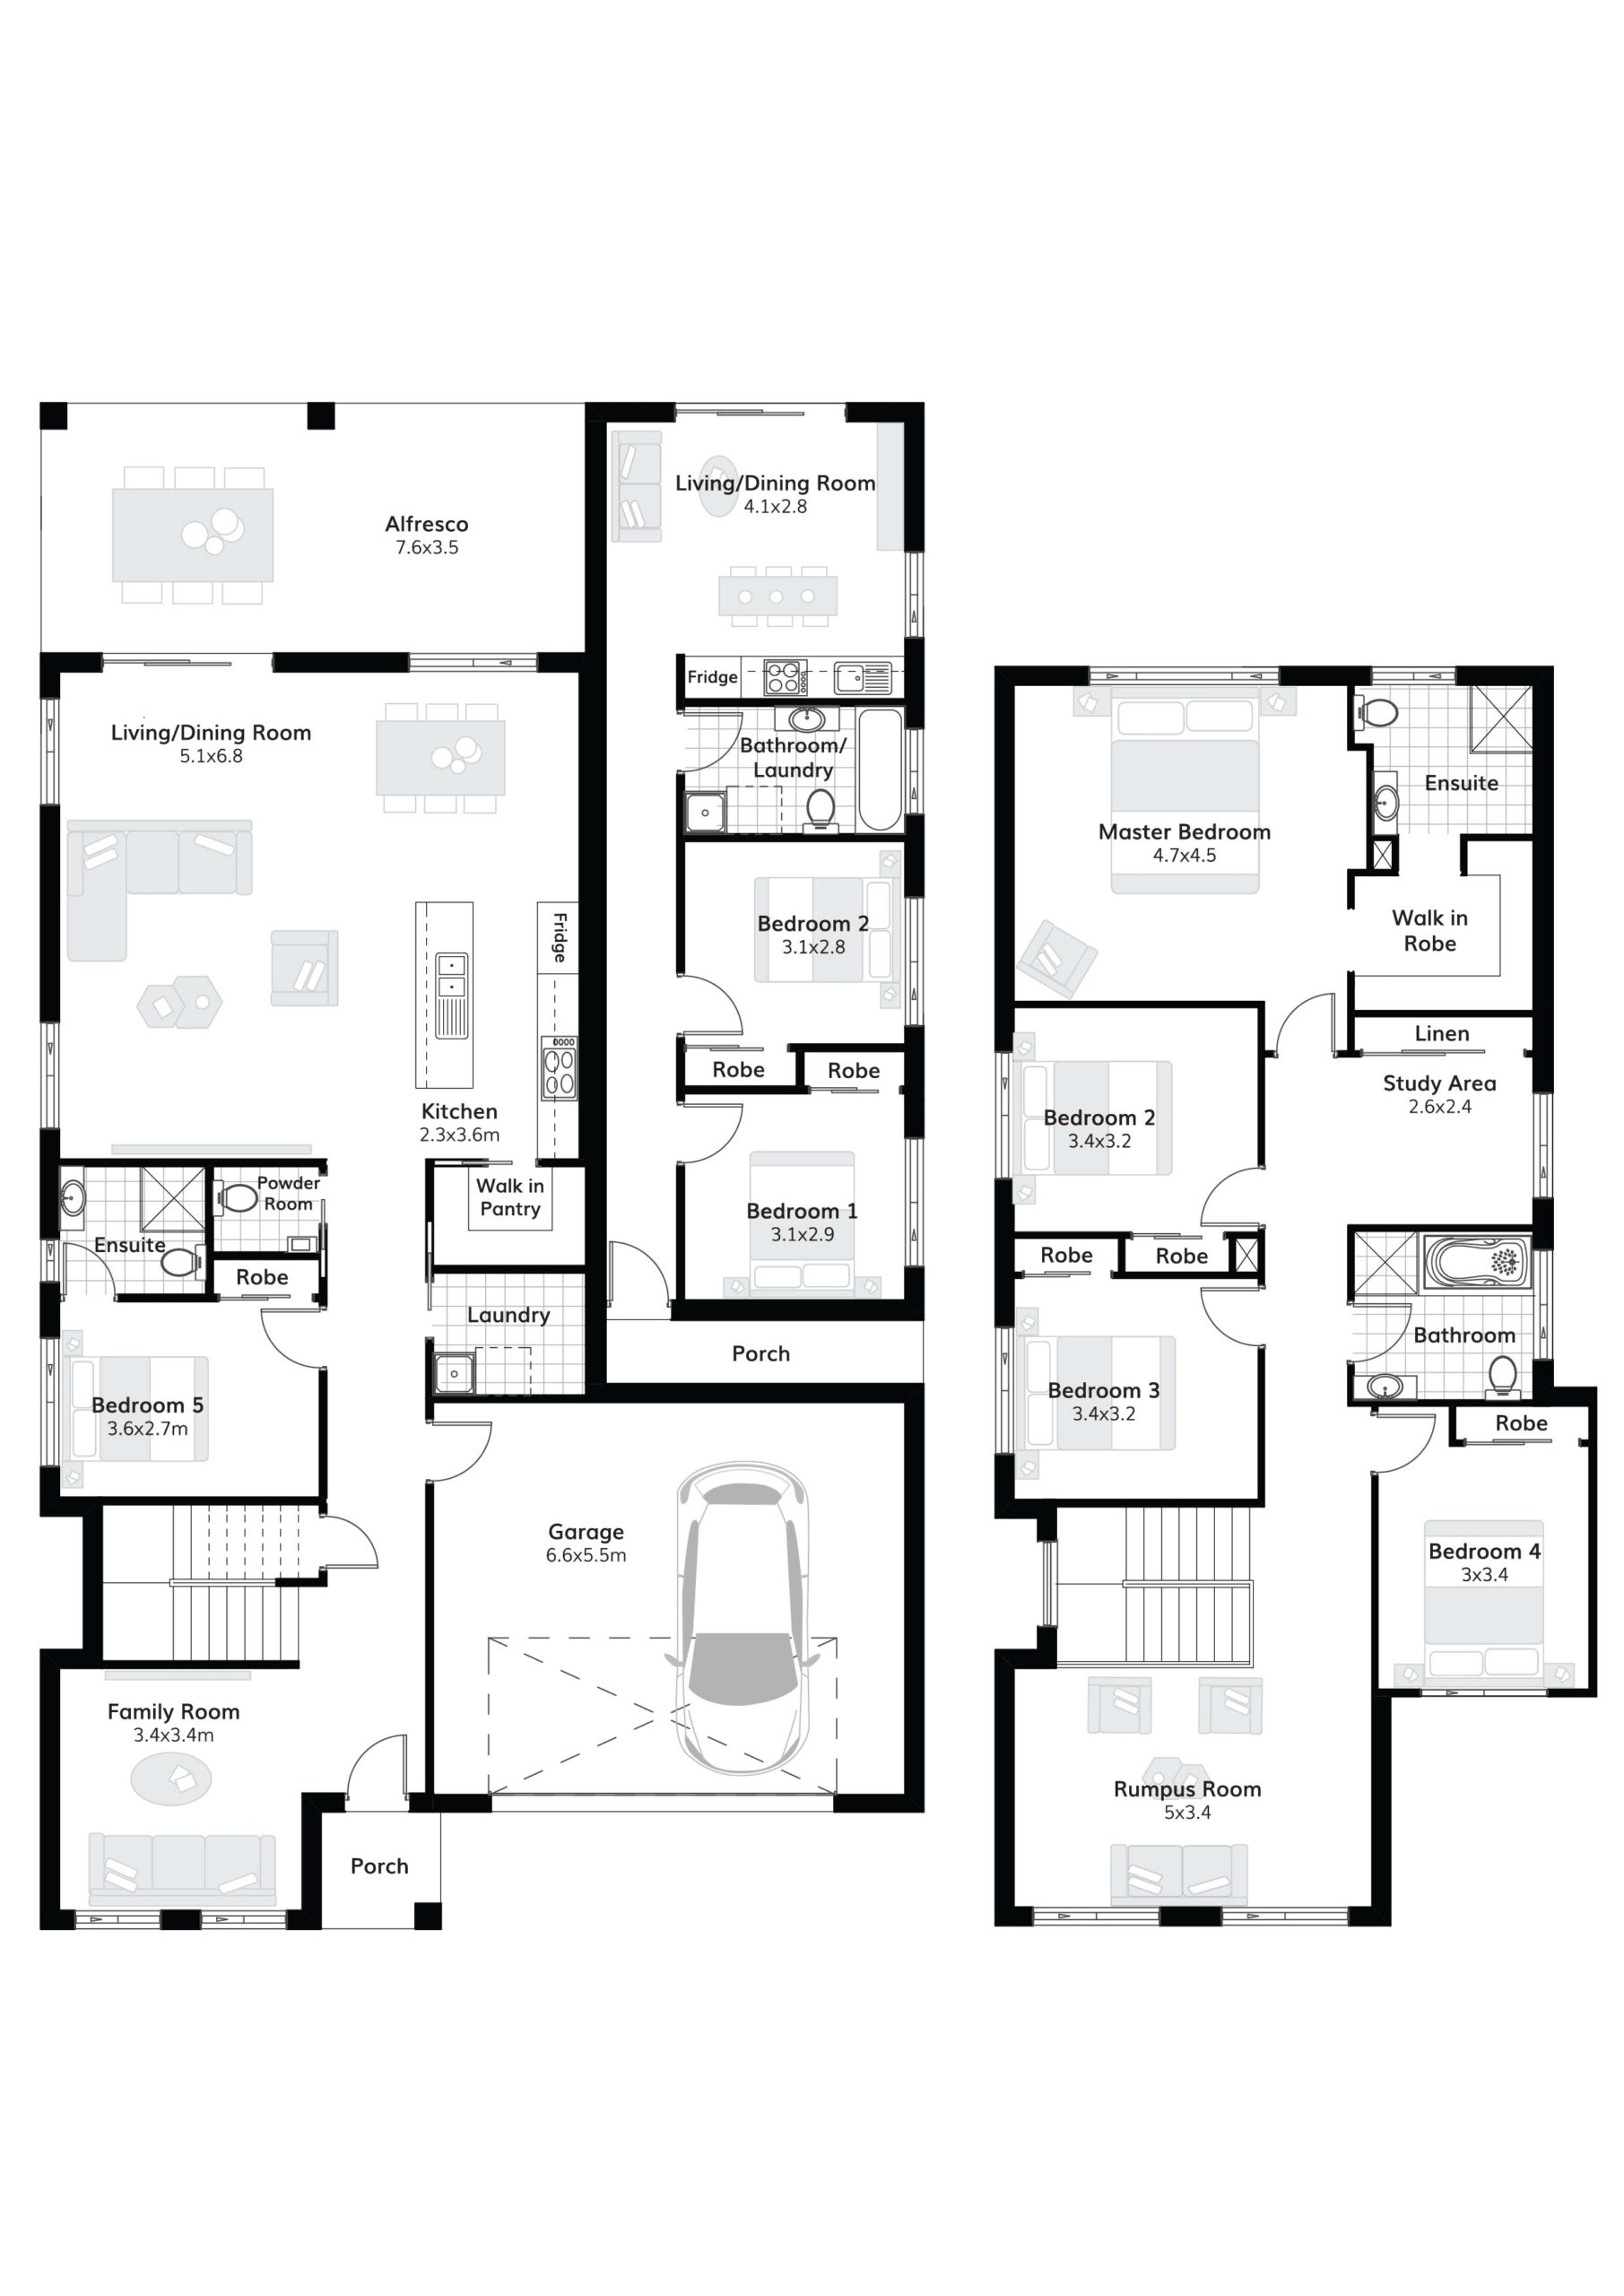 Dual Occupancy scaled floor plan